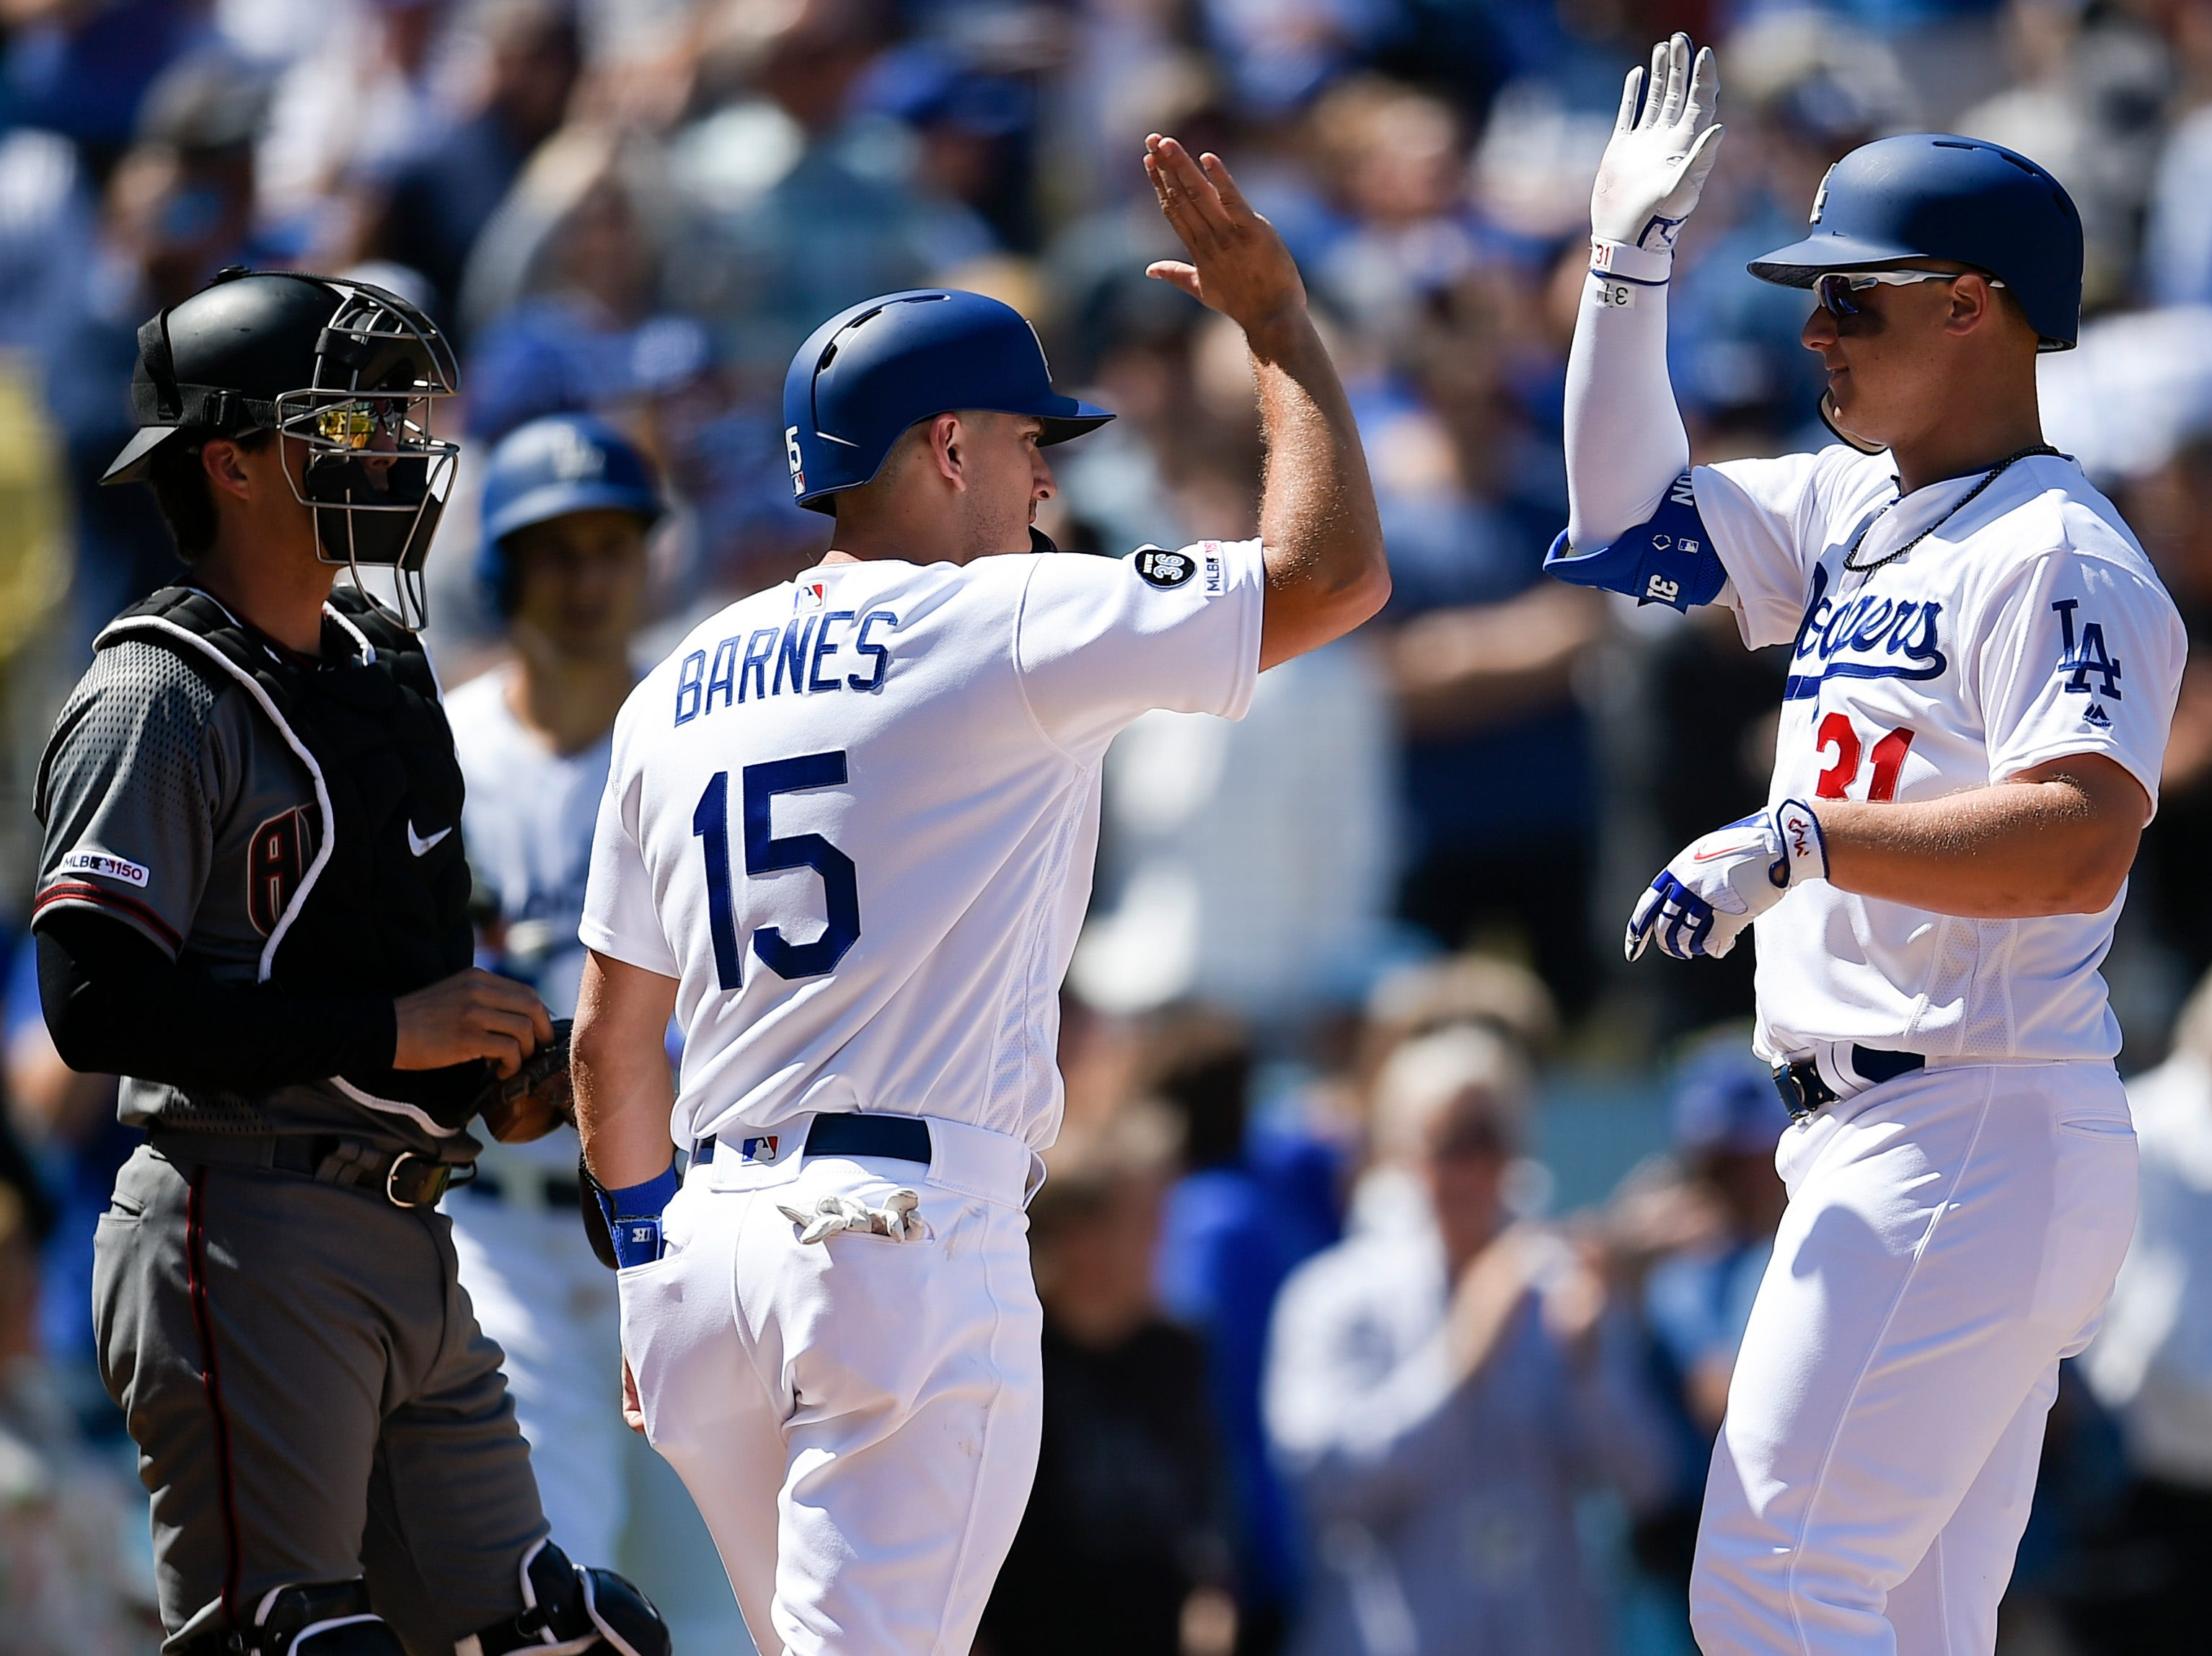 Mar 28, 2019; Los Angeles, CA, USA; Los Angeles Dodgers left fielder Joc Pederson (31) celebrates with catcher Austin Barnes (15) after a two-run home run during the second inning against the Arizona Diamondbacks at Dodger Stadium. Mandatory Credit: Kelvin Kuo-USA TODAY Sports